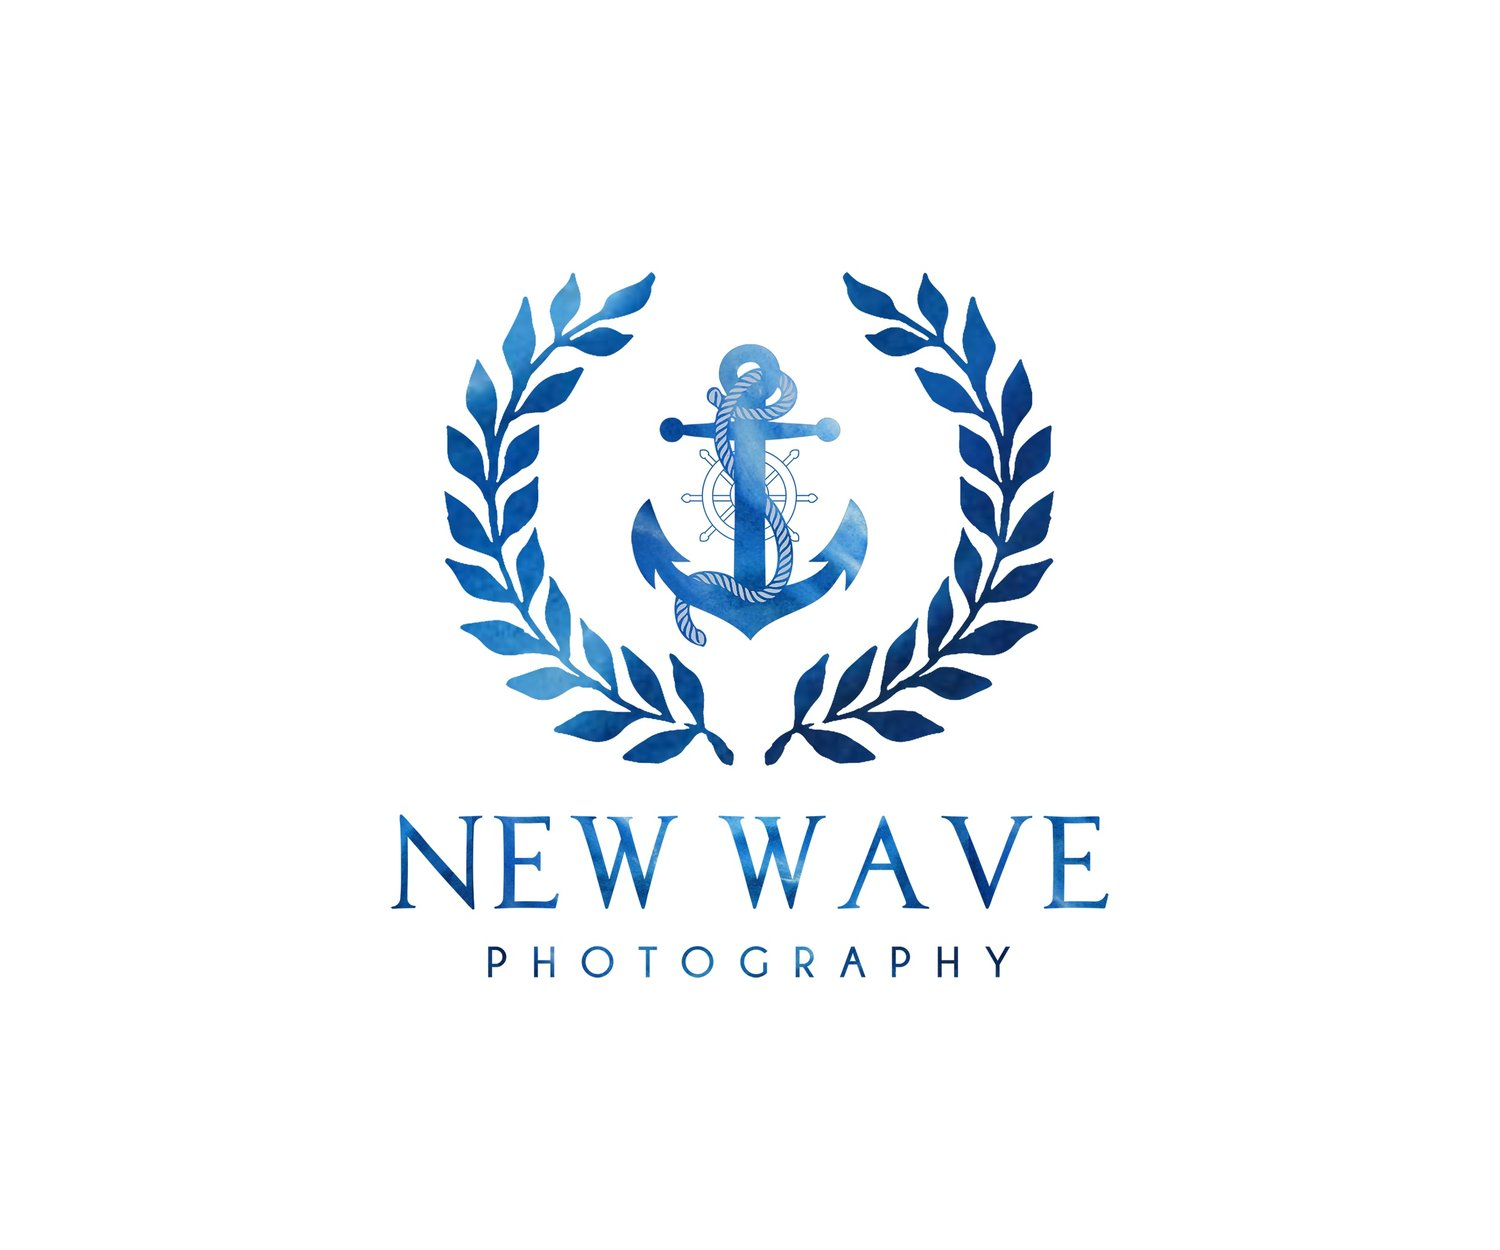 New Wave Photography